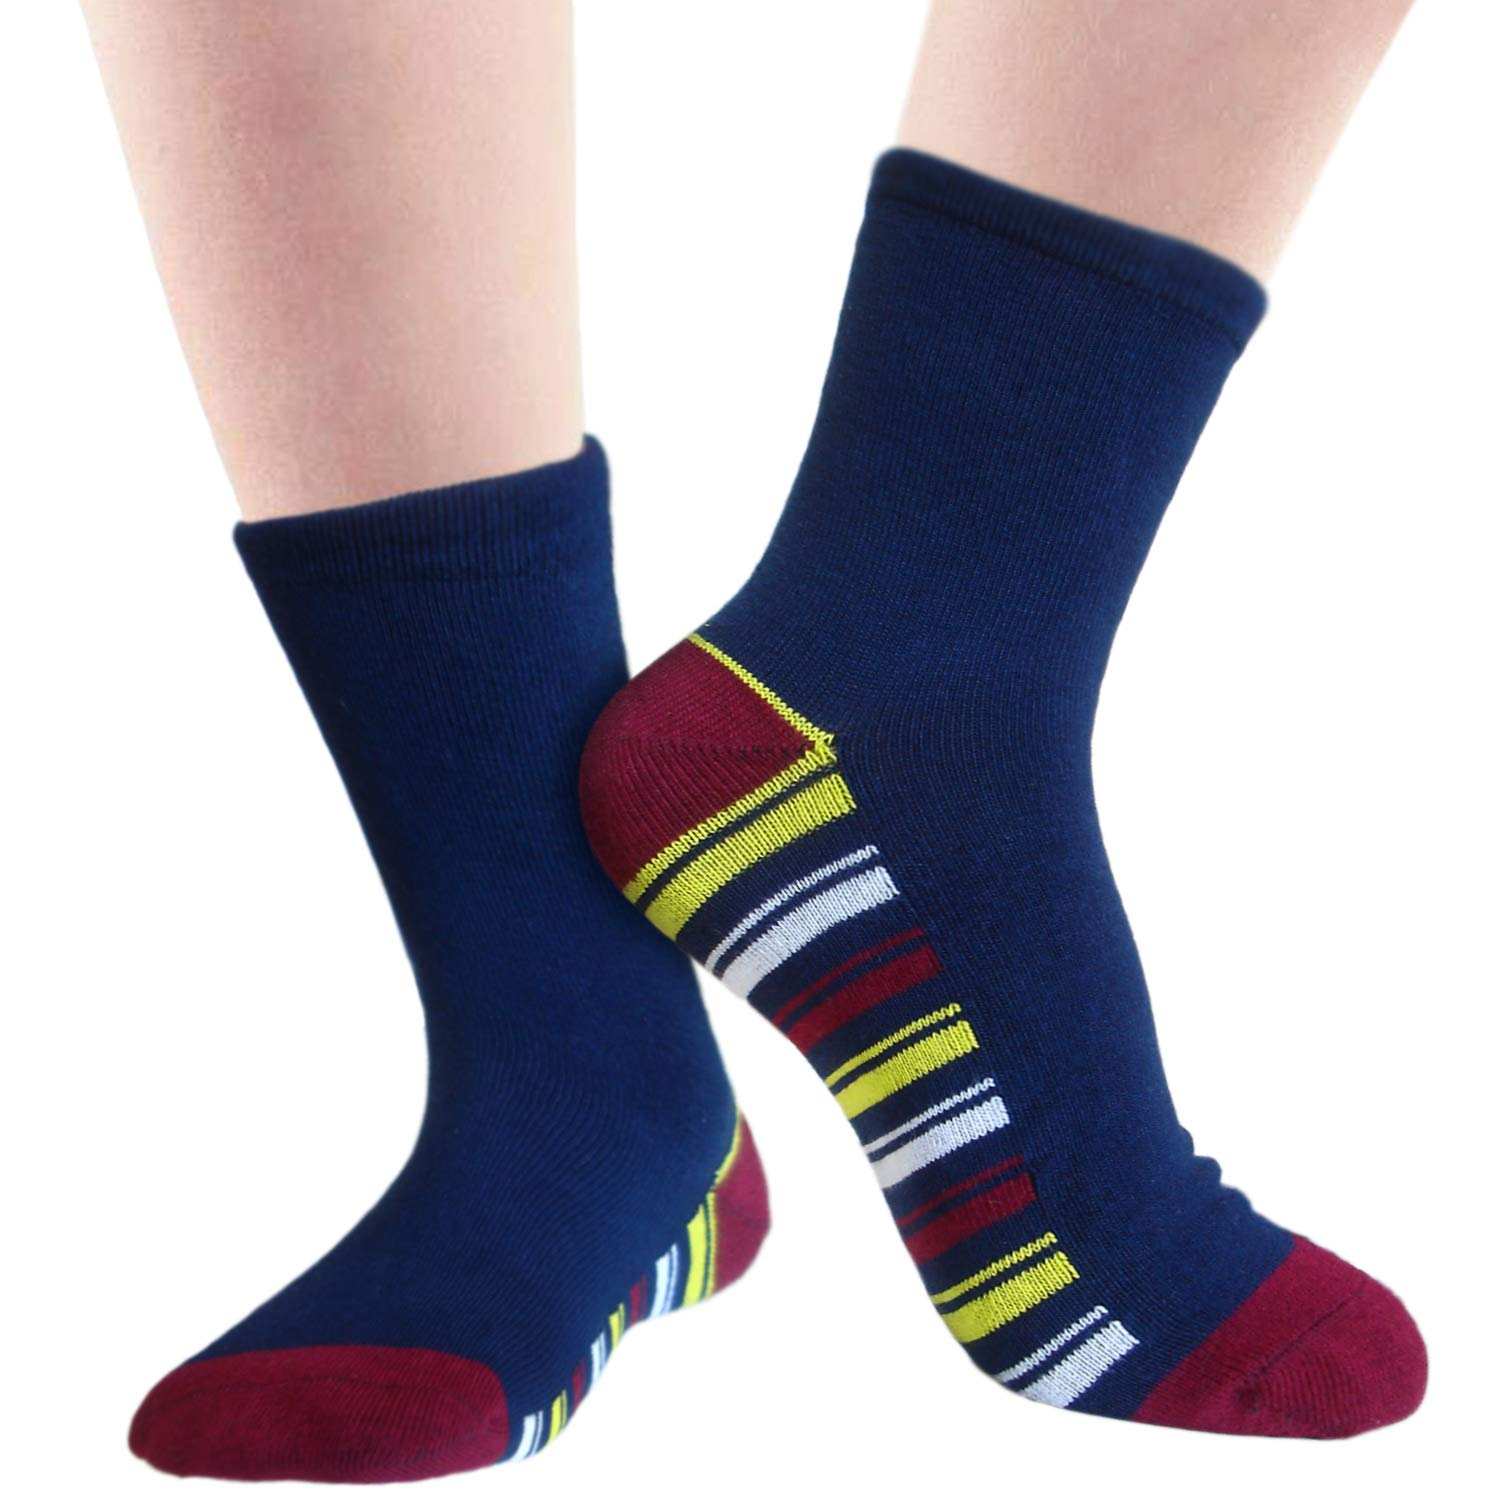 Boys bamboo school socks with flat toe seam for extra comfort